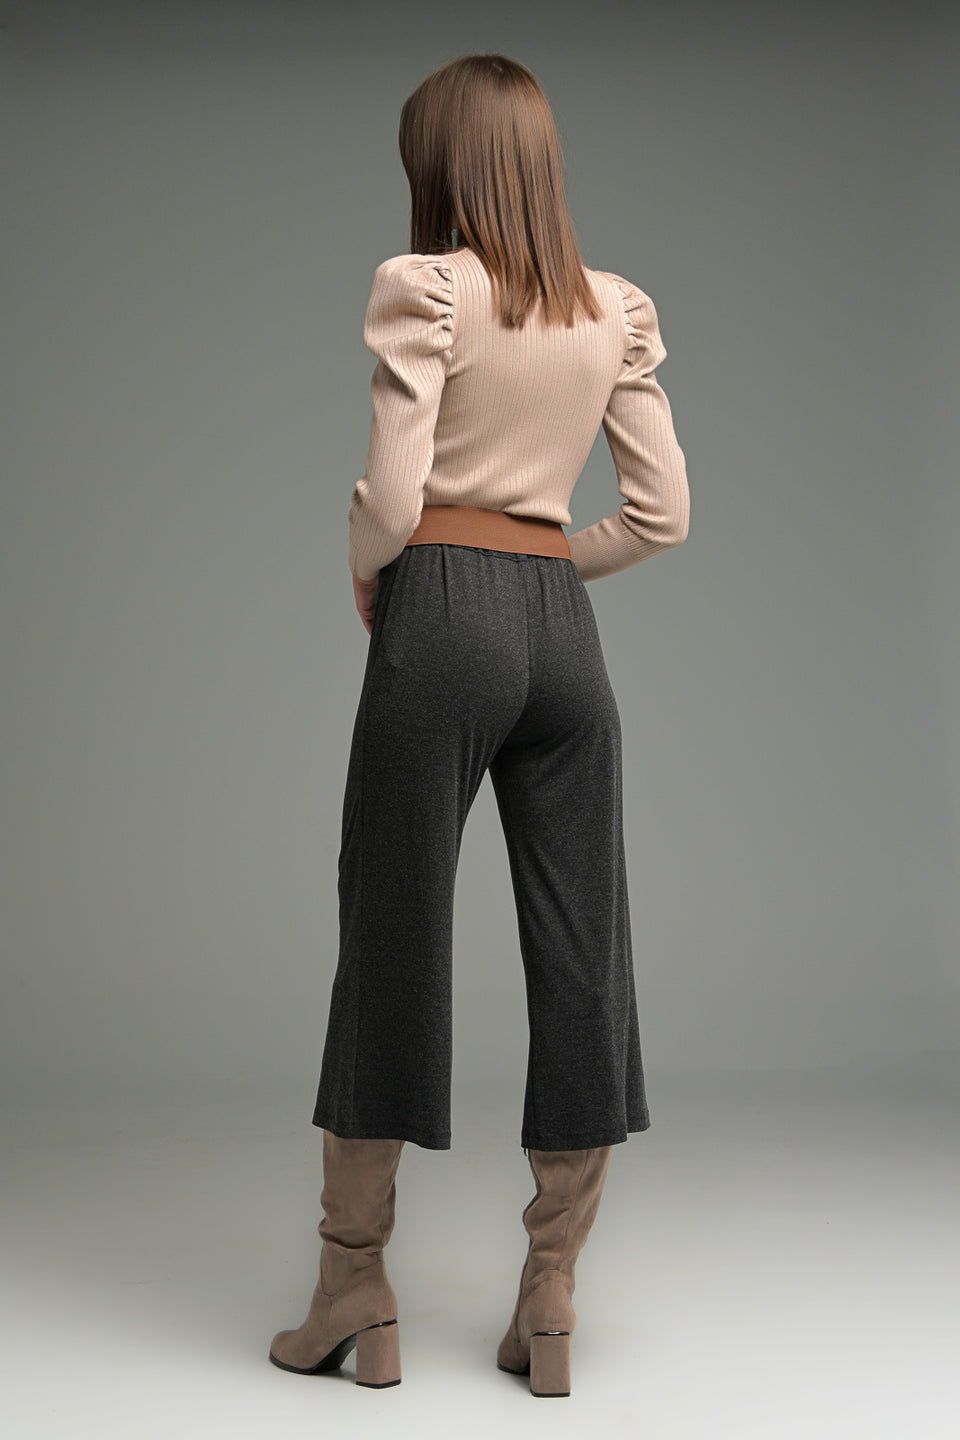 WIDE LEG CROP TROUSERS IN SOFT FABRIC WIDE LEG CROP TROUSERS IN SOFT FABRIC